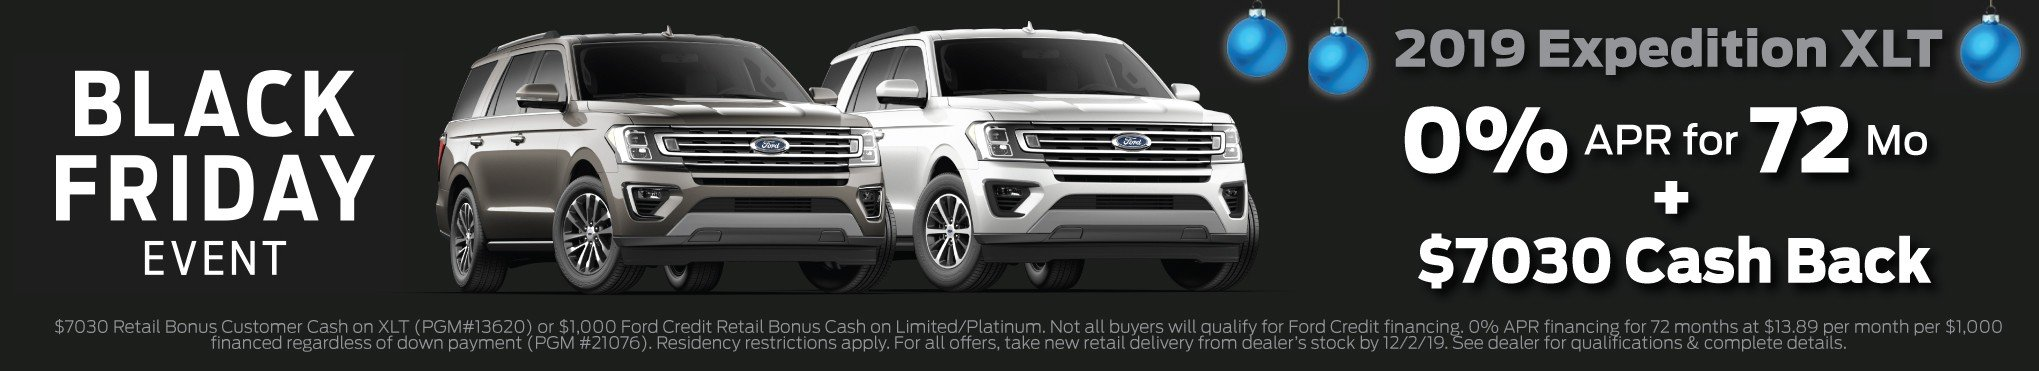 2019 Expedition XLT Incentive 12-2-2019